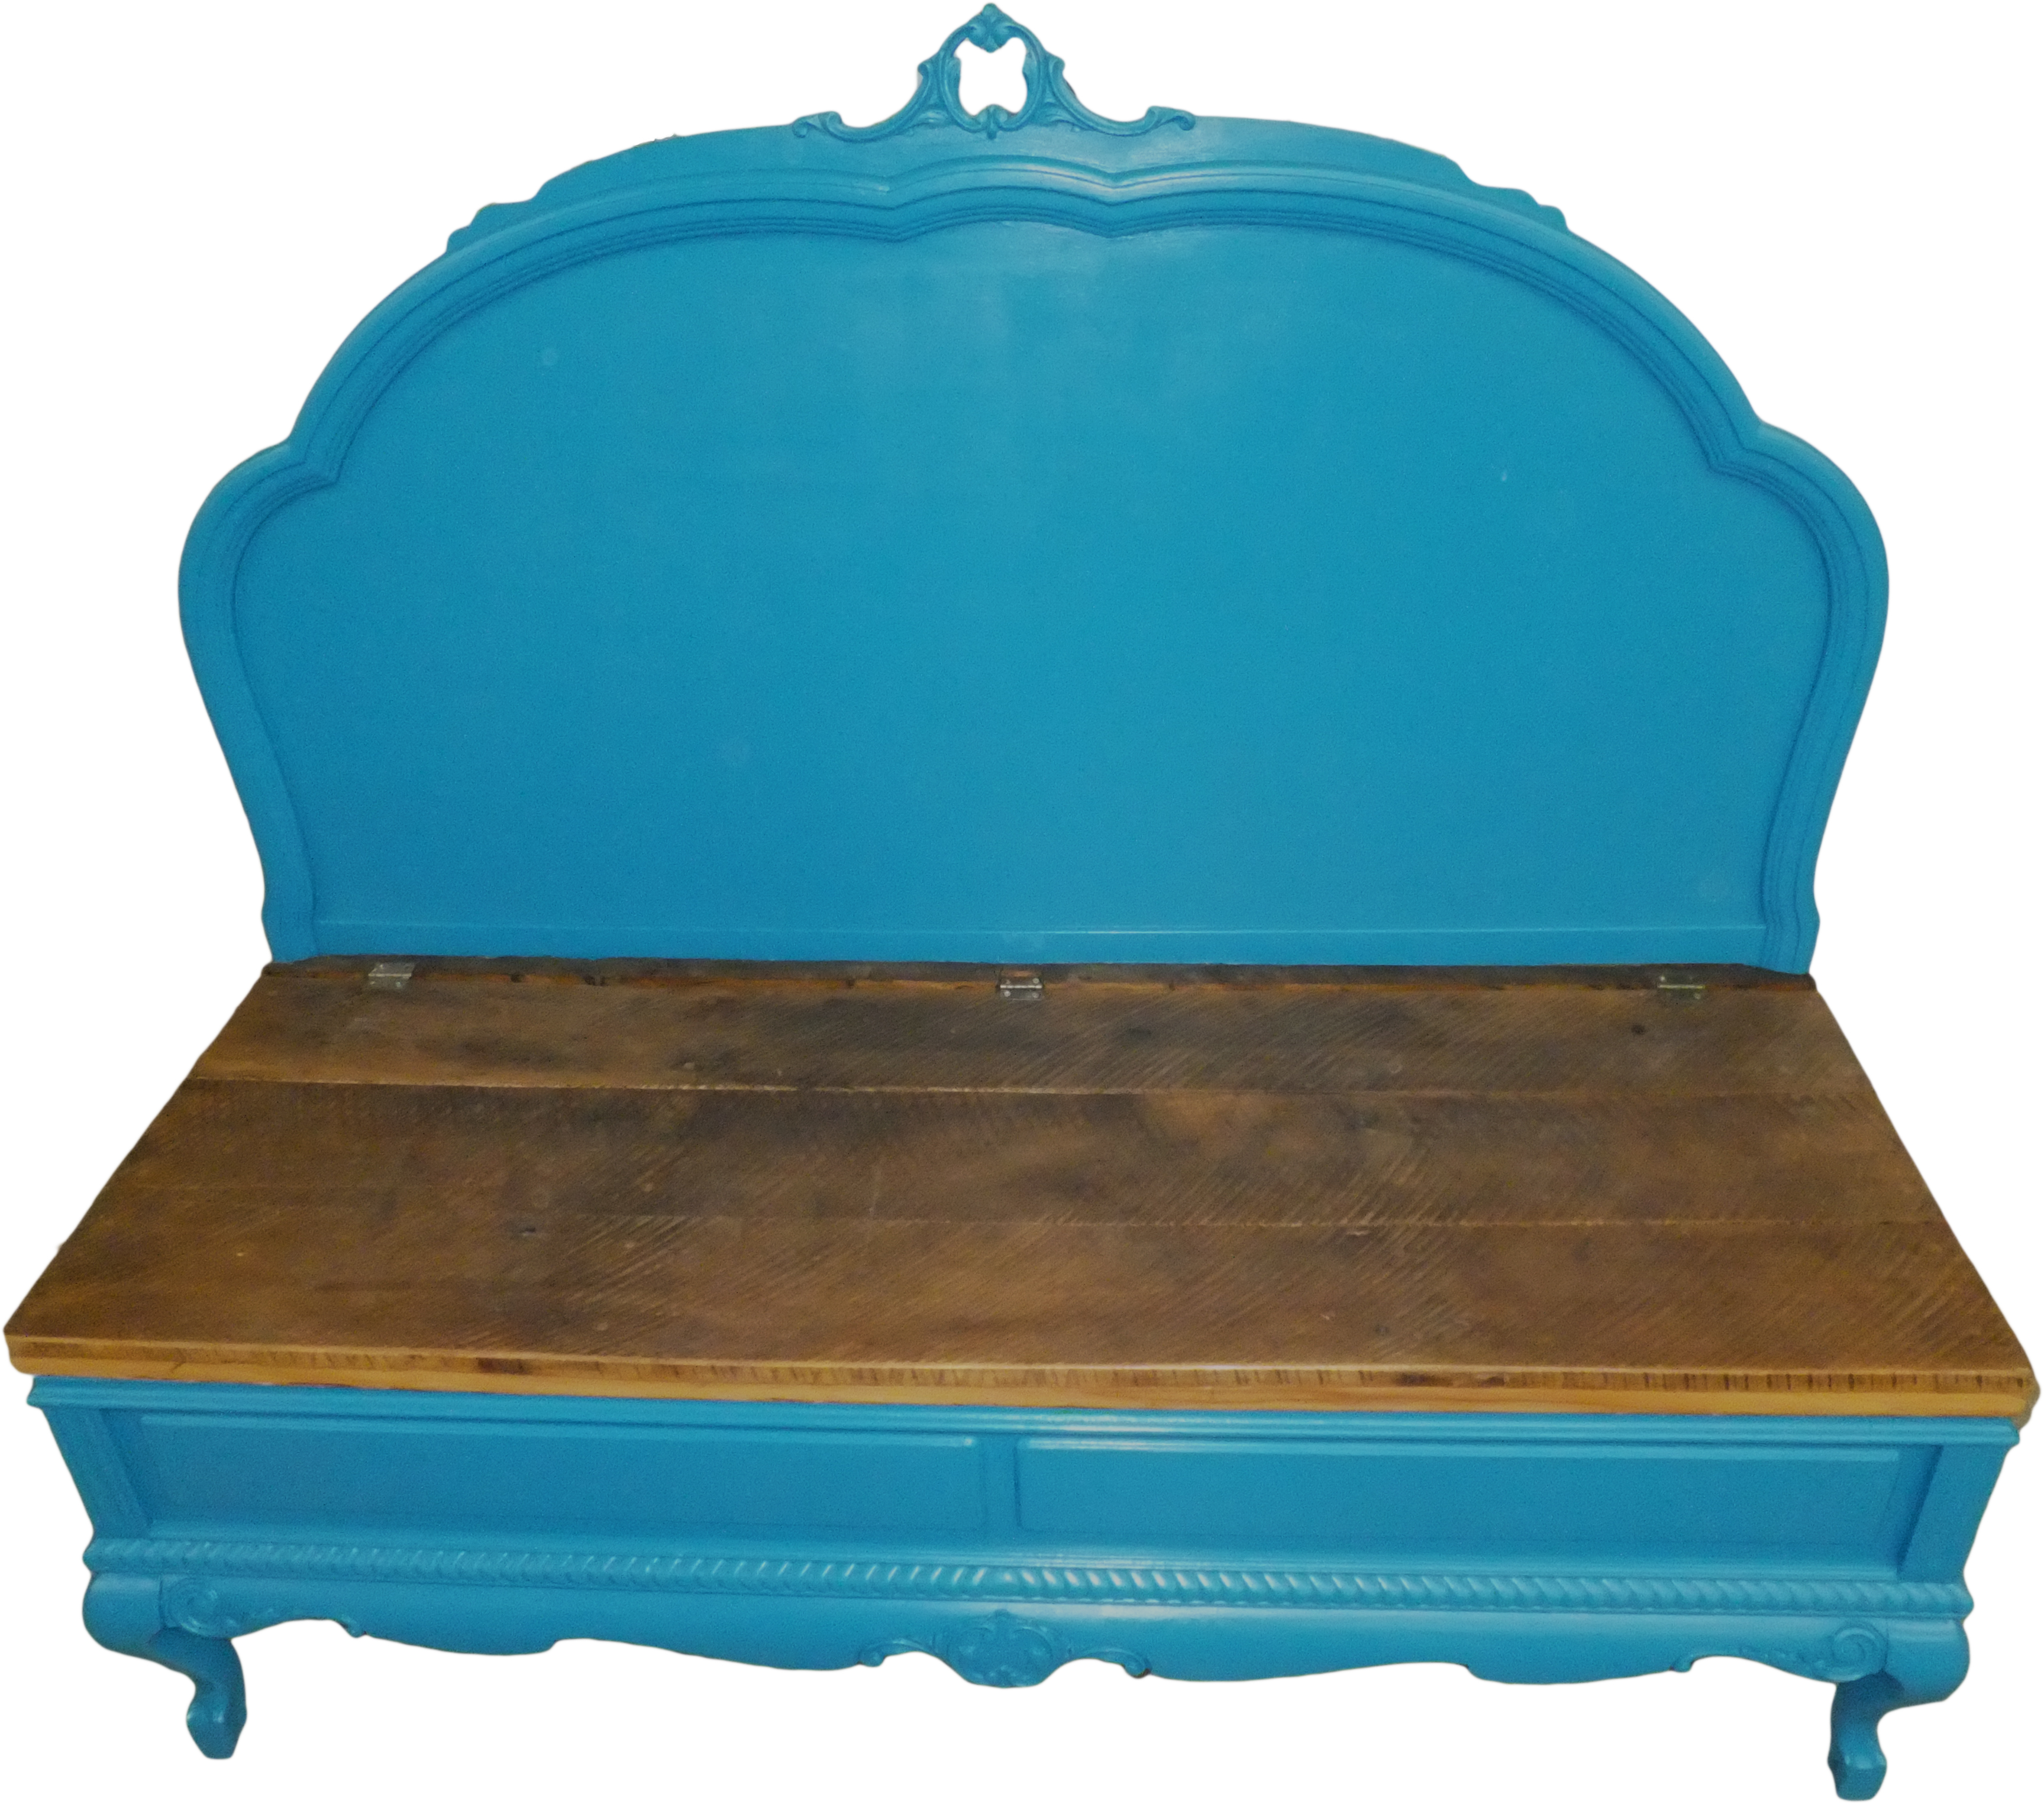 bench color footboard headboard a painted crafty lady that cherry dark the of later similar when and diary to with made from distressed so original we